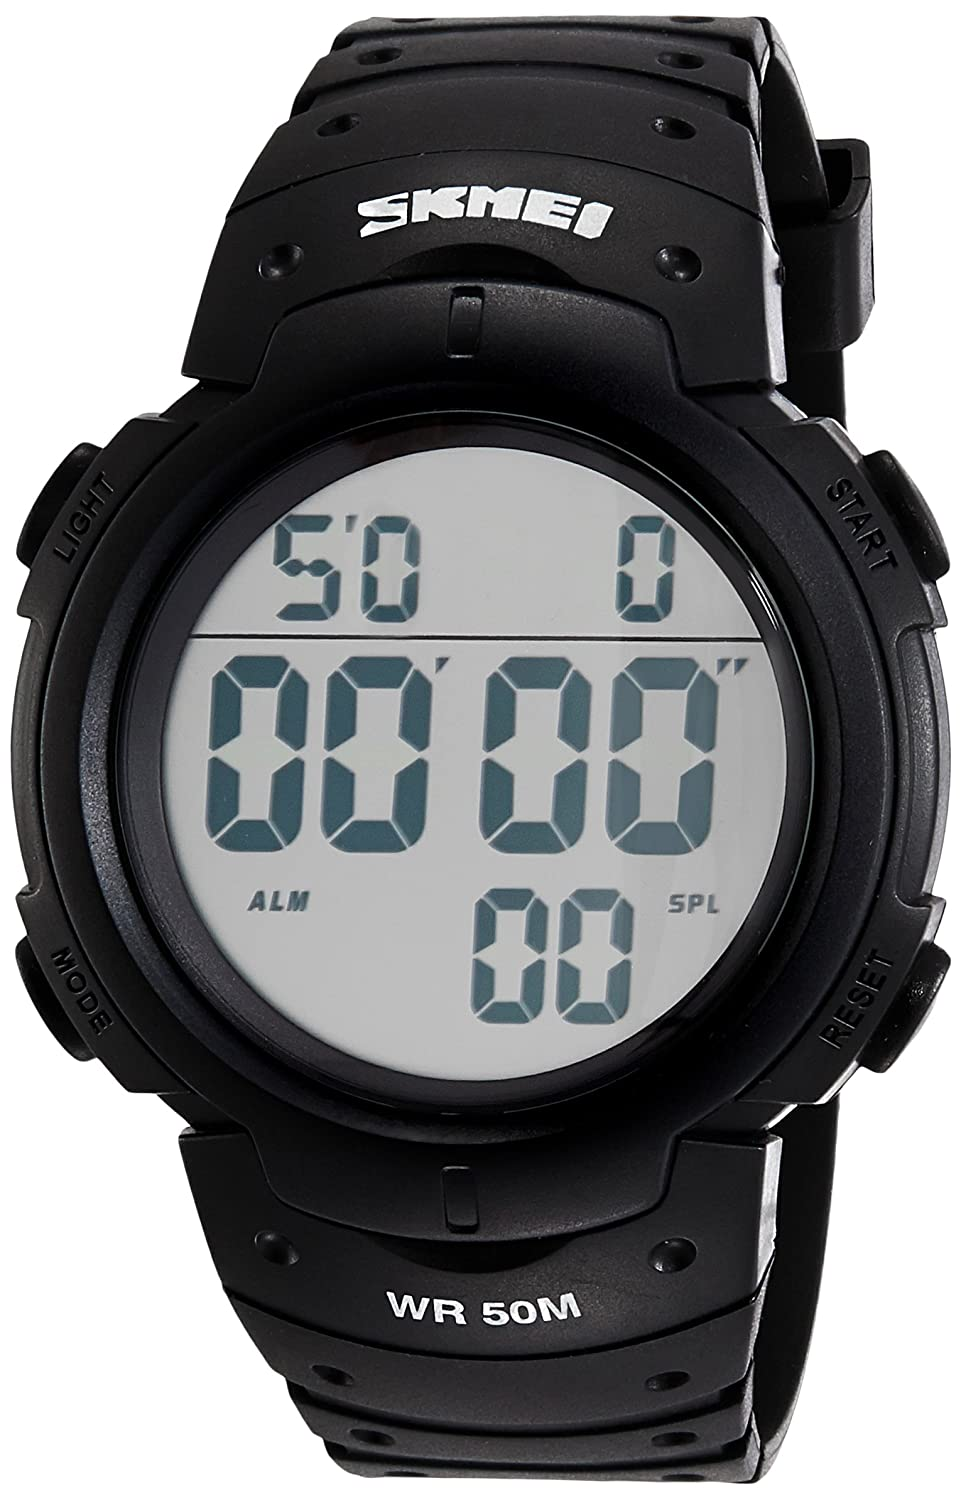 Solar Power Sport Watch Men Electronic Led Watches Military Outdoor Watch Skmei Brand Women Wristwatch Digital Children Watches Fashionable And Attractive Packages Children's Watches